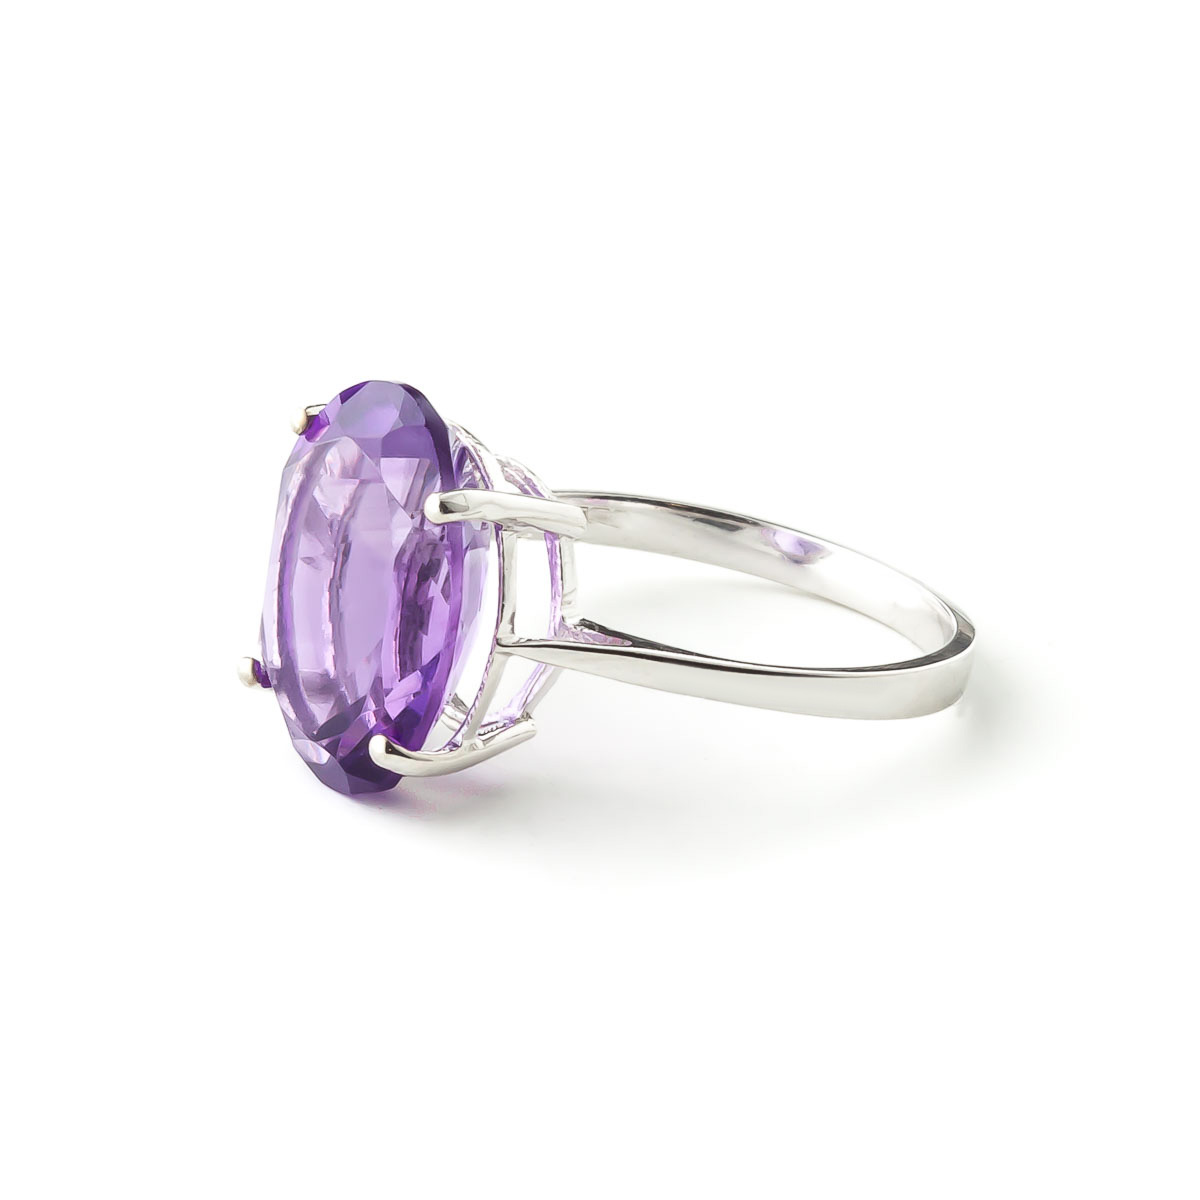 Oval Cut Amethyst Ring 7.55ct in 9ct White Gold